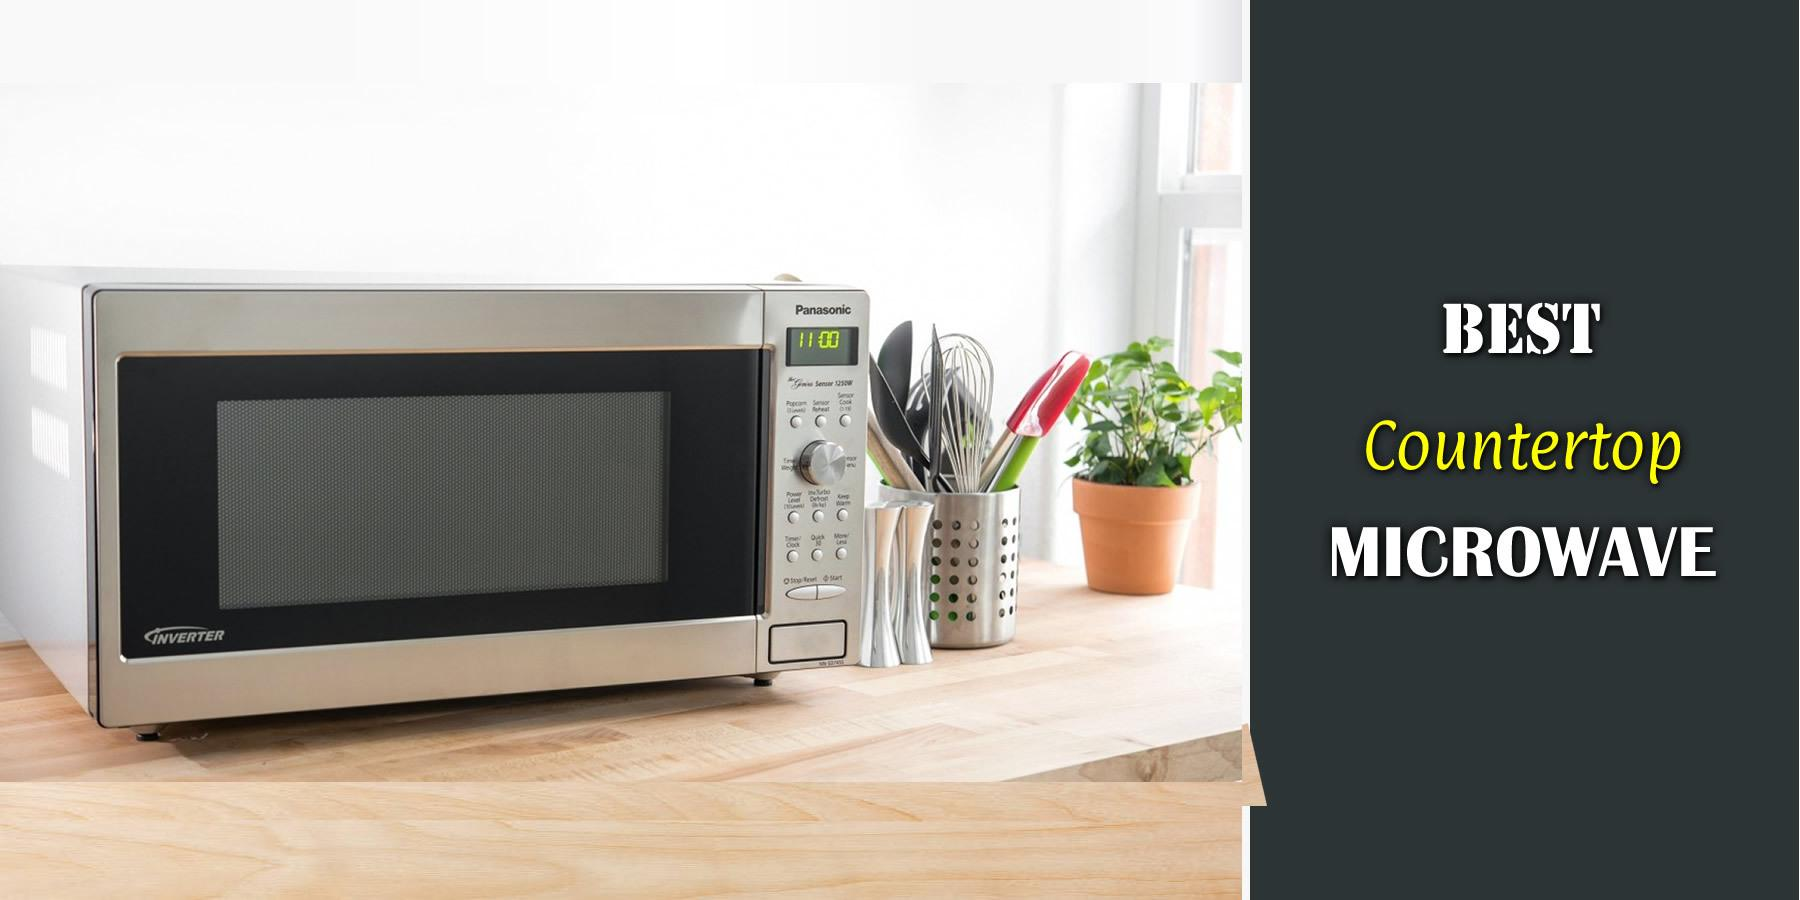 Cuisinart Countertop Cooking Best Countertop Microwave For 2019: Top 10 Models Reviewed!